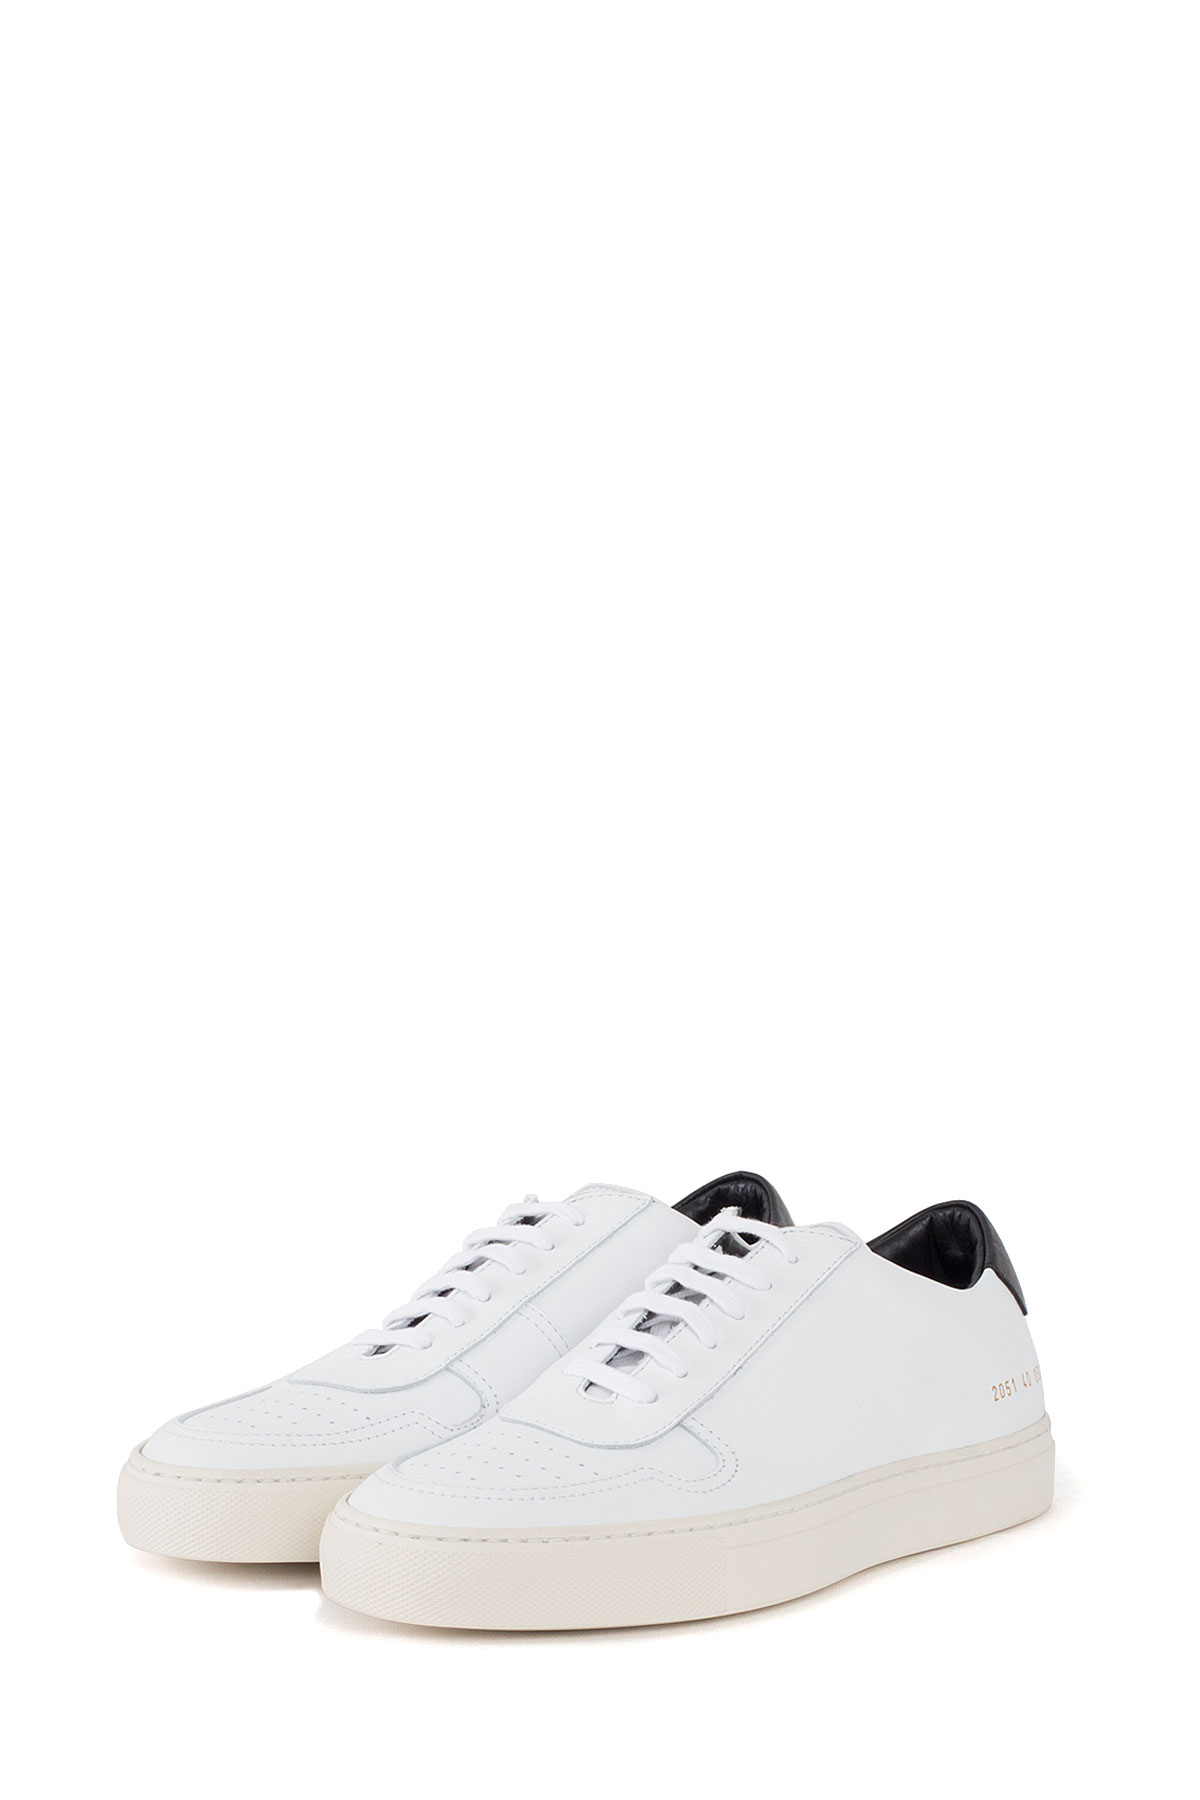 Common Projects : Bball Low Retro (White)